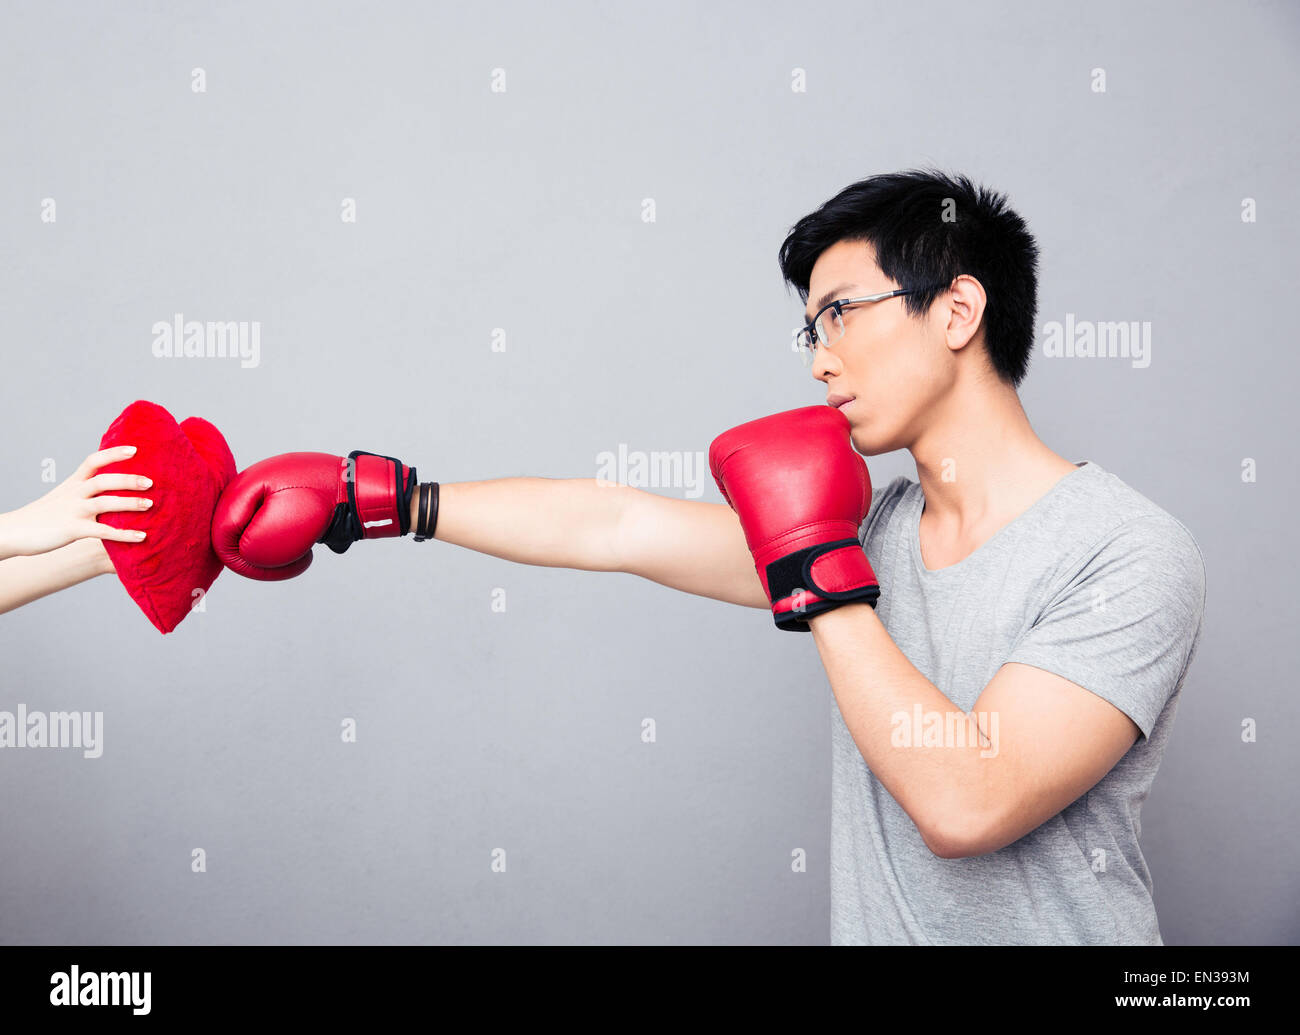 Concept image of a man in boxing gloves hitting at heart over gray background Stock Photo